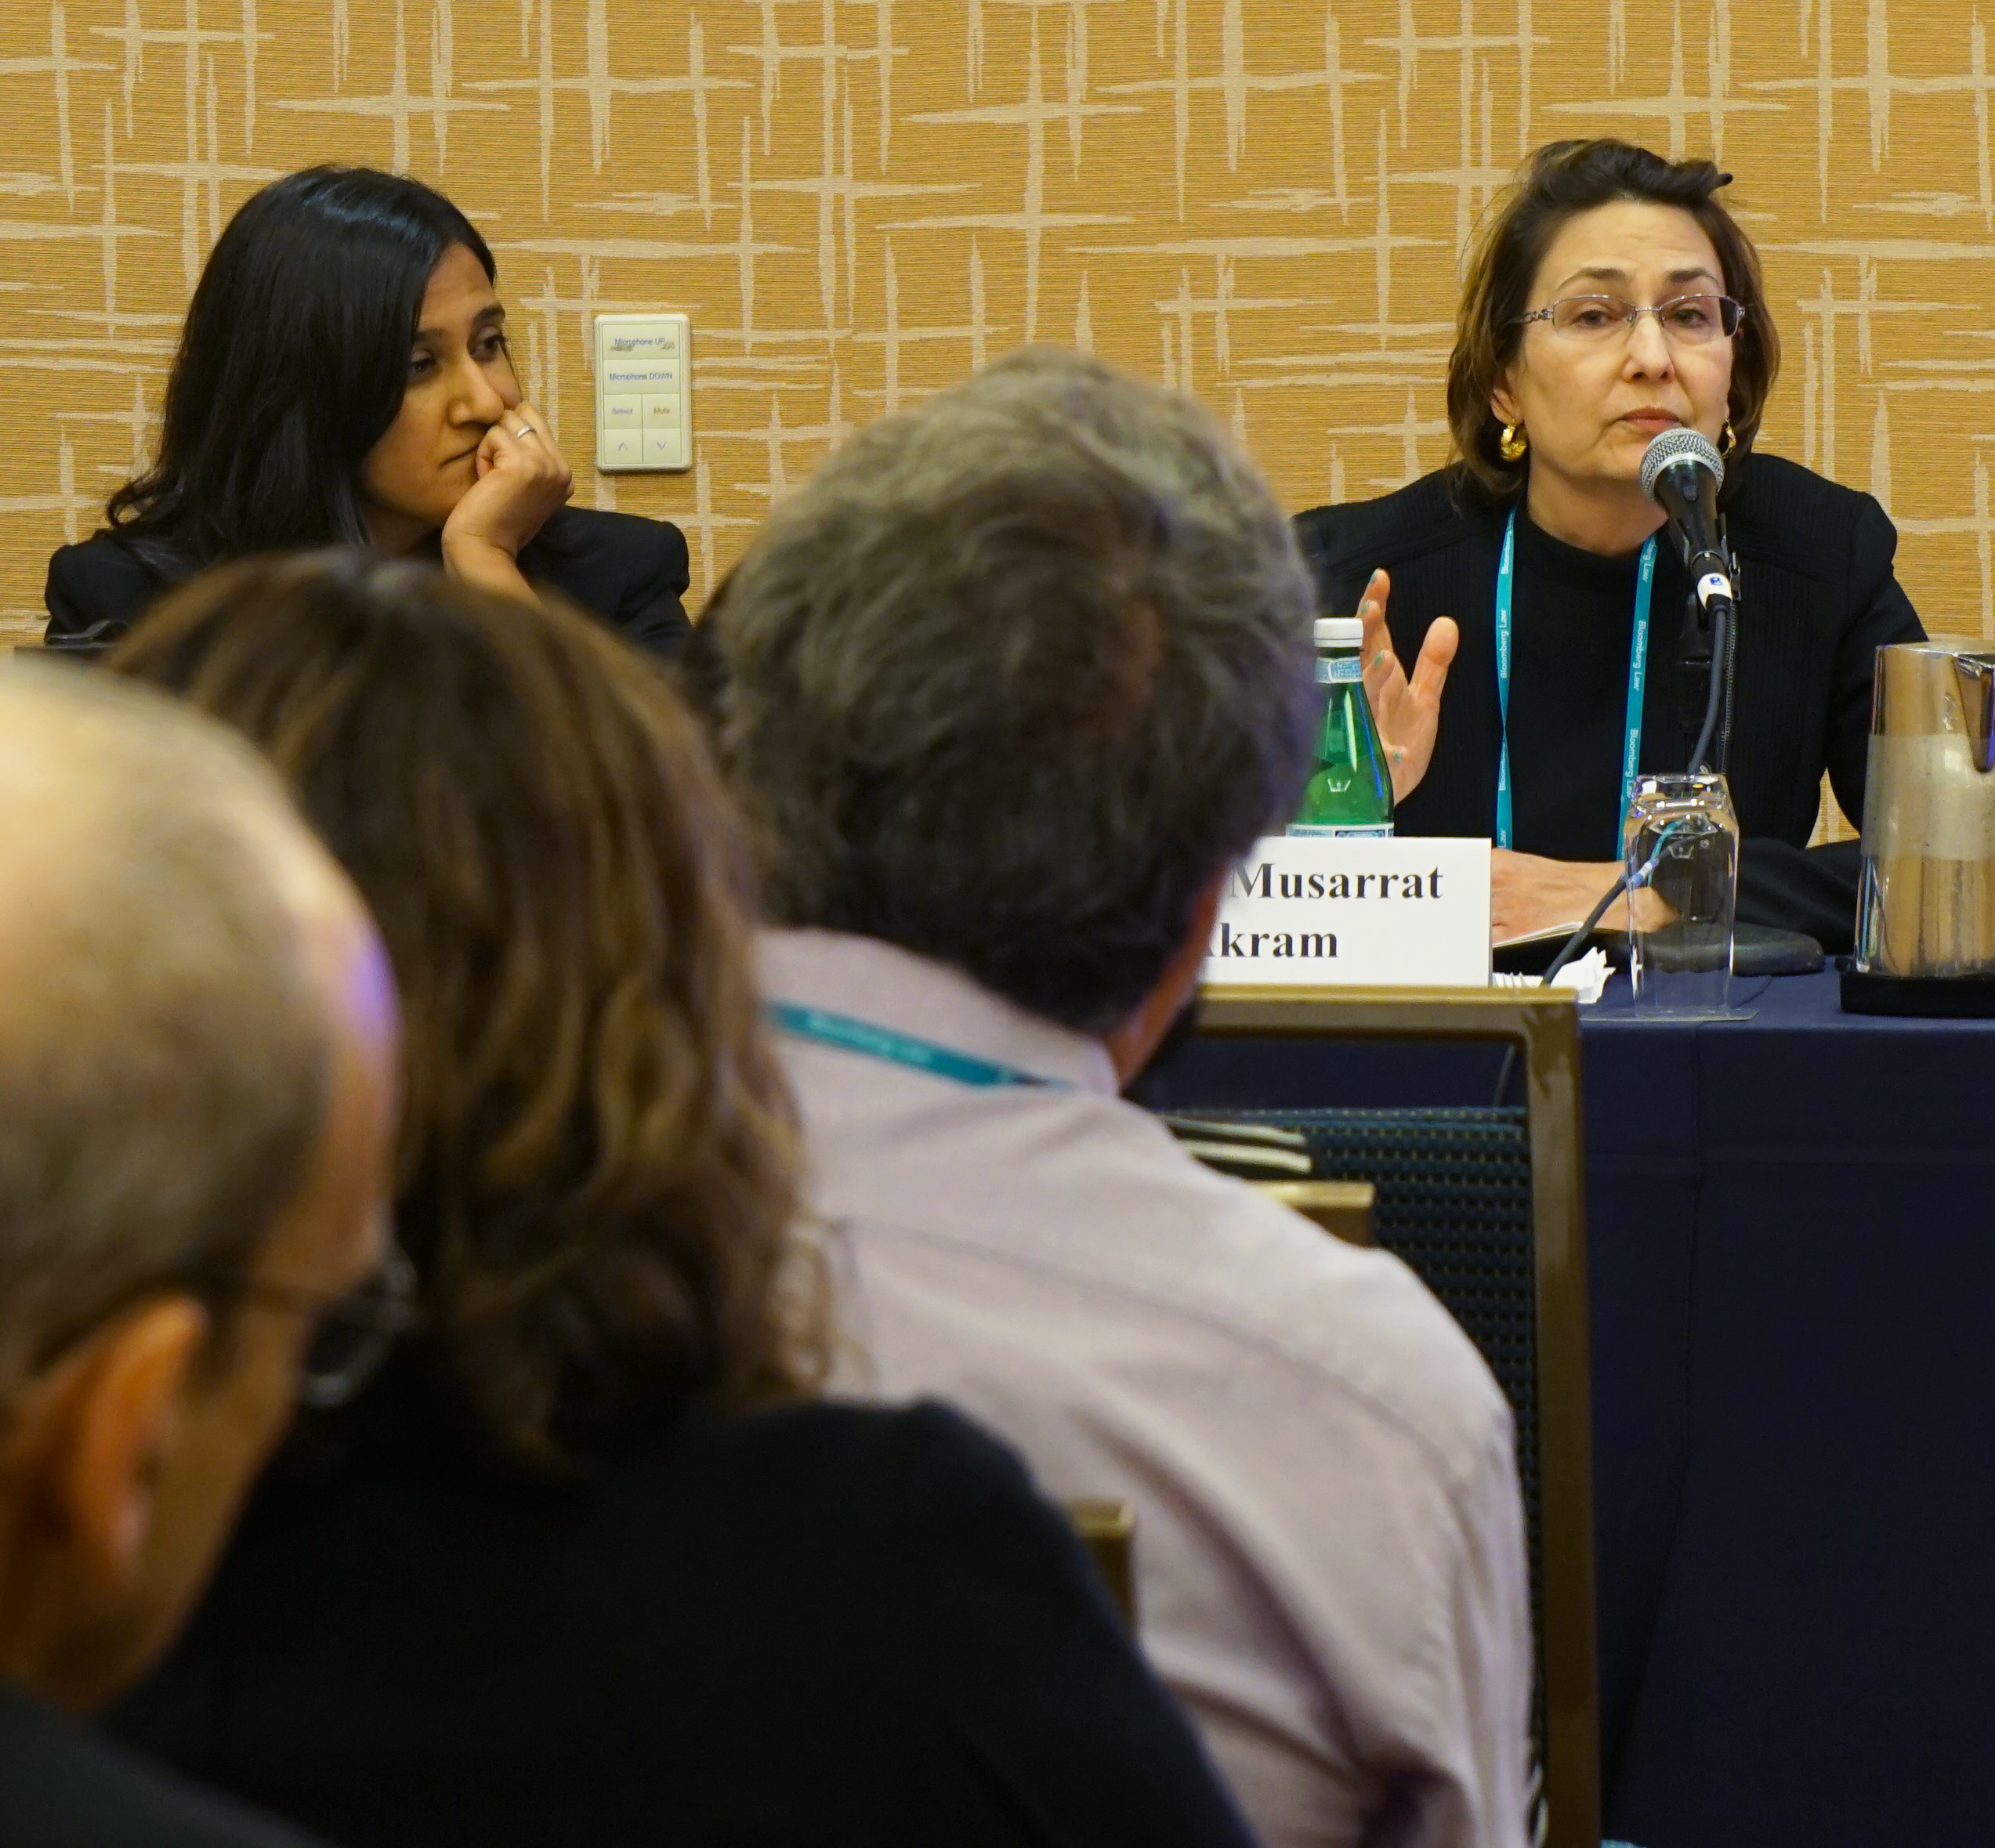 Section on Immigration Law at the 2017 AALS Annual Meeting